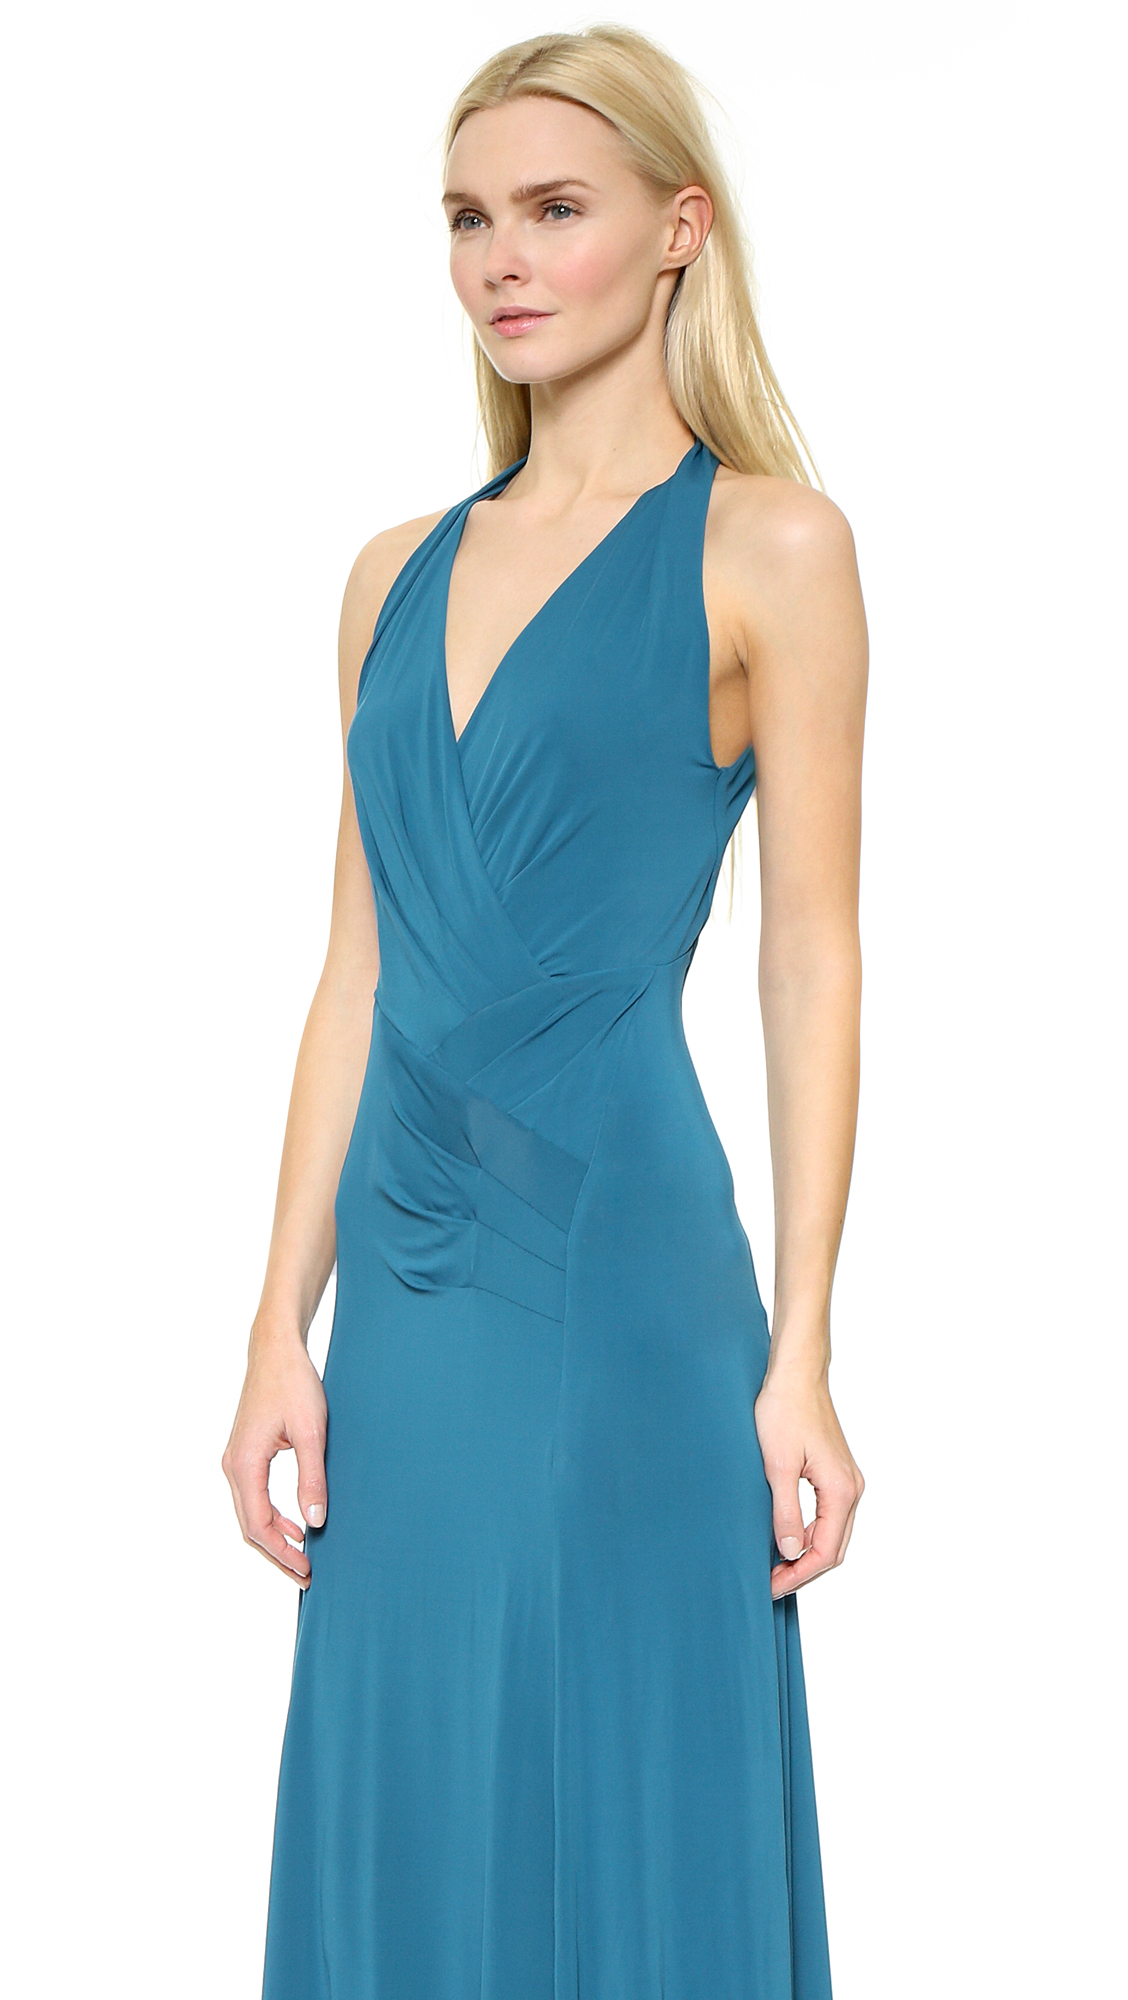 Lyst - Donna Karan Sleeveless Draped Gown - Cerulean in Blue